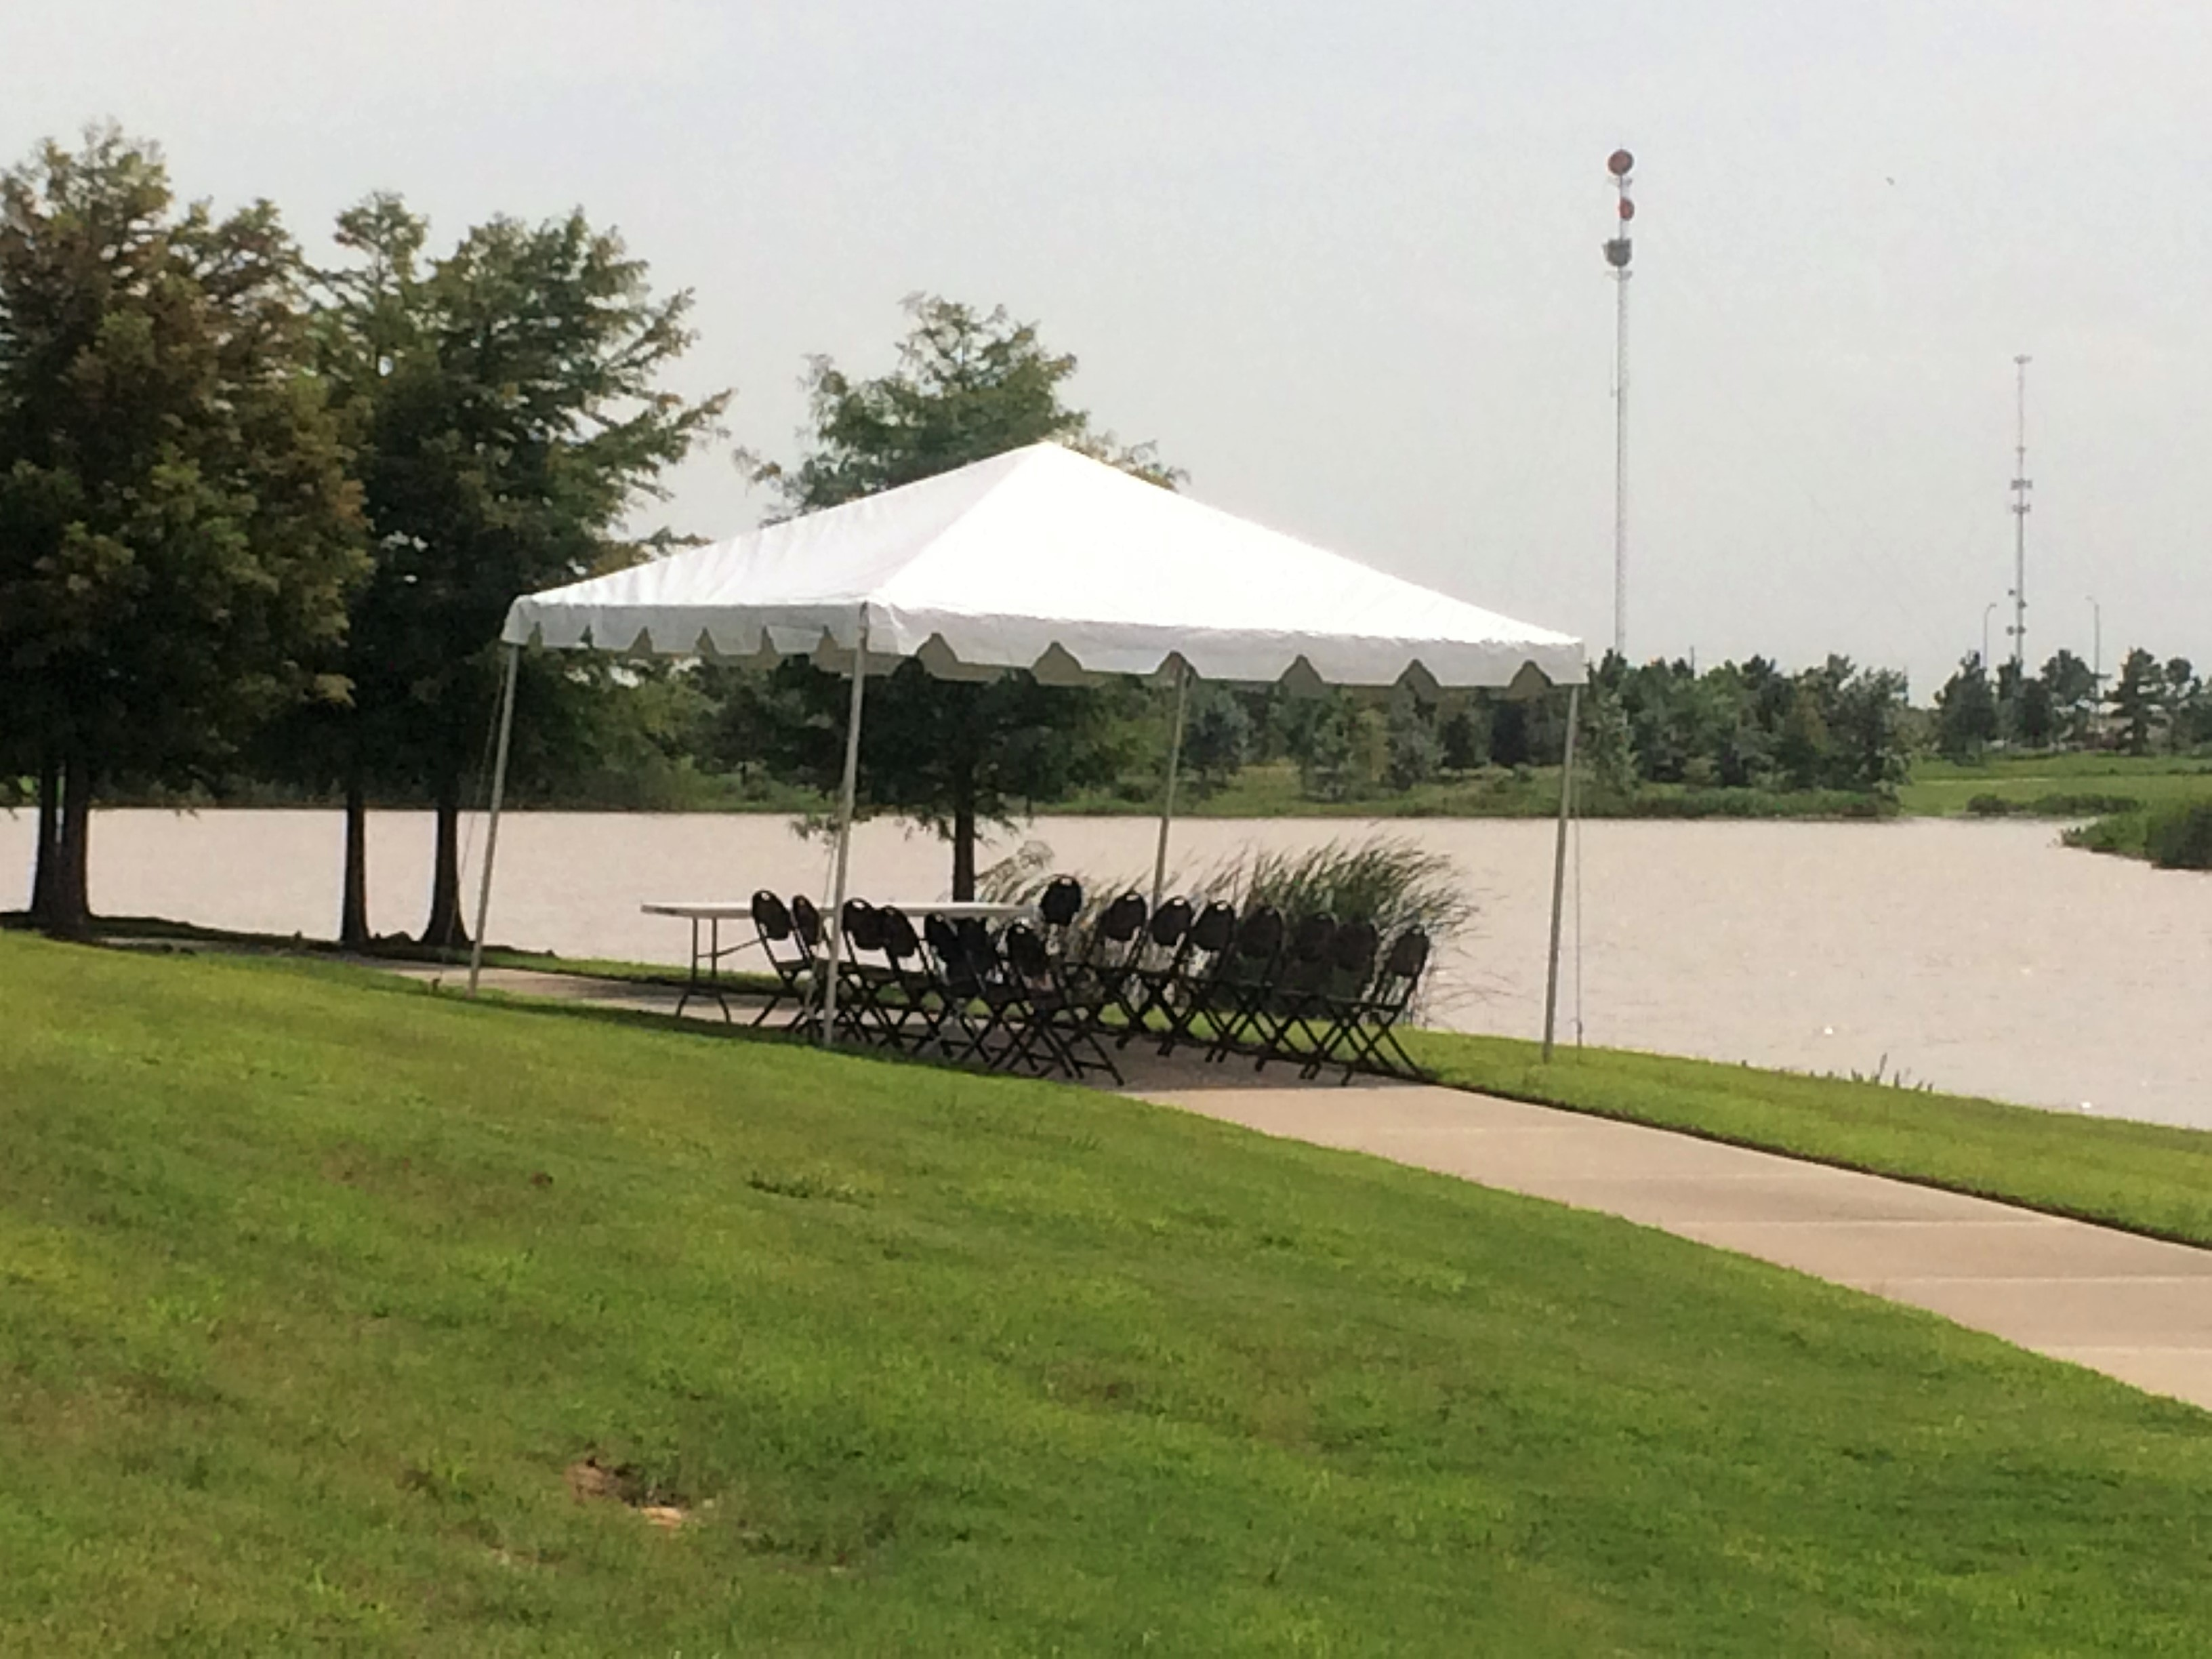 15x15 Tent Rentals & 15x15 Tent Rentals in houston Hu0026R got you covered